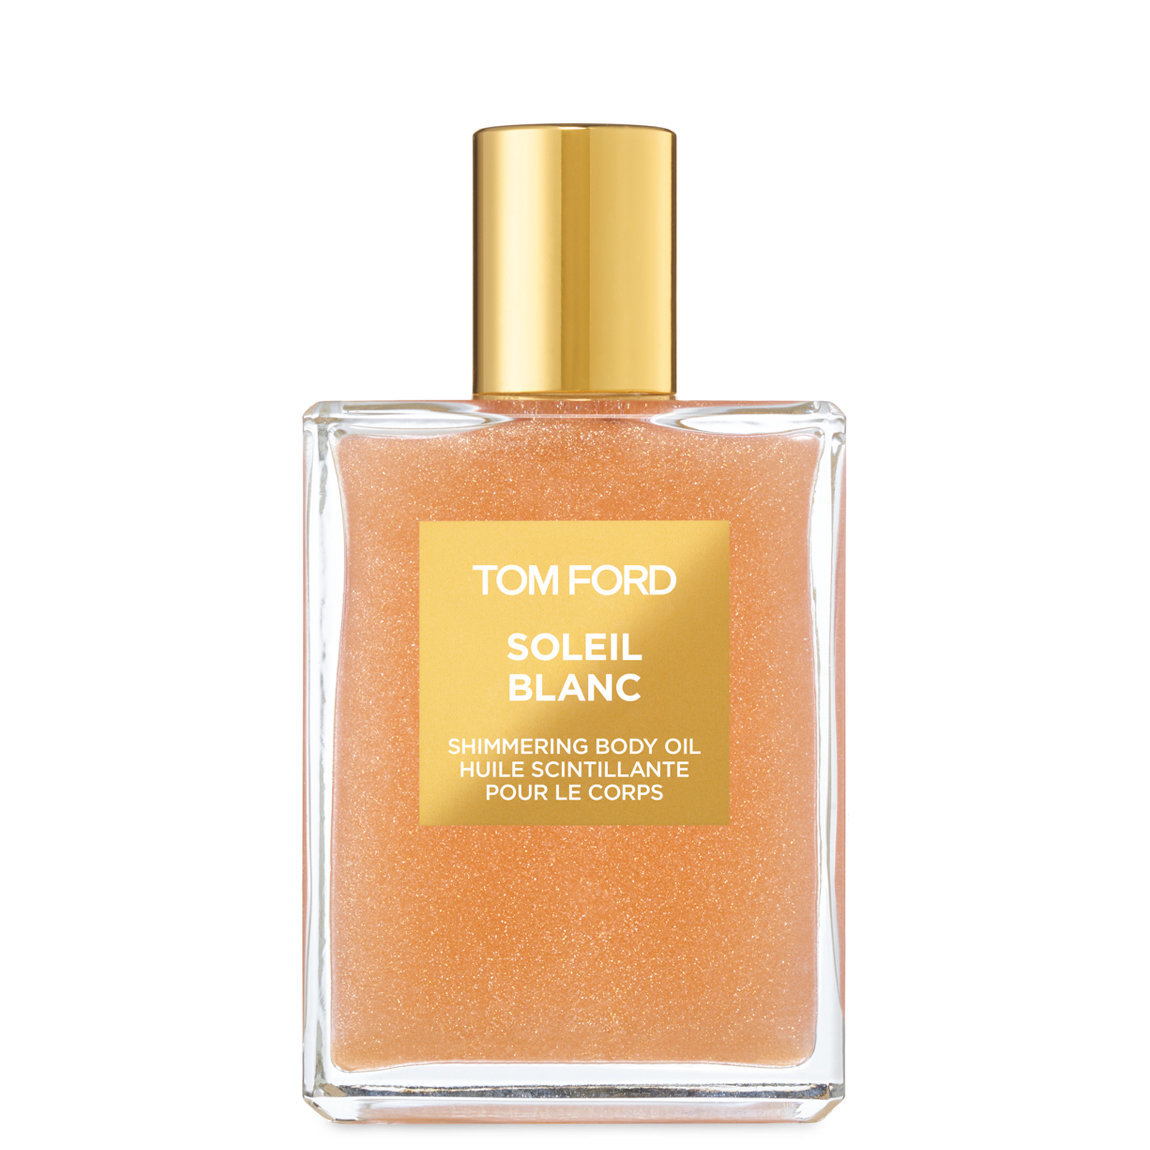 TOM FORD Soleil Blanc Shimmering Body Oil Rose Gold alternative view 1 - product swatch.